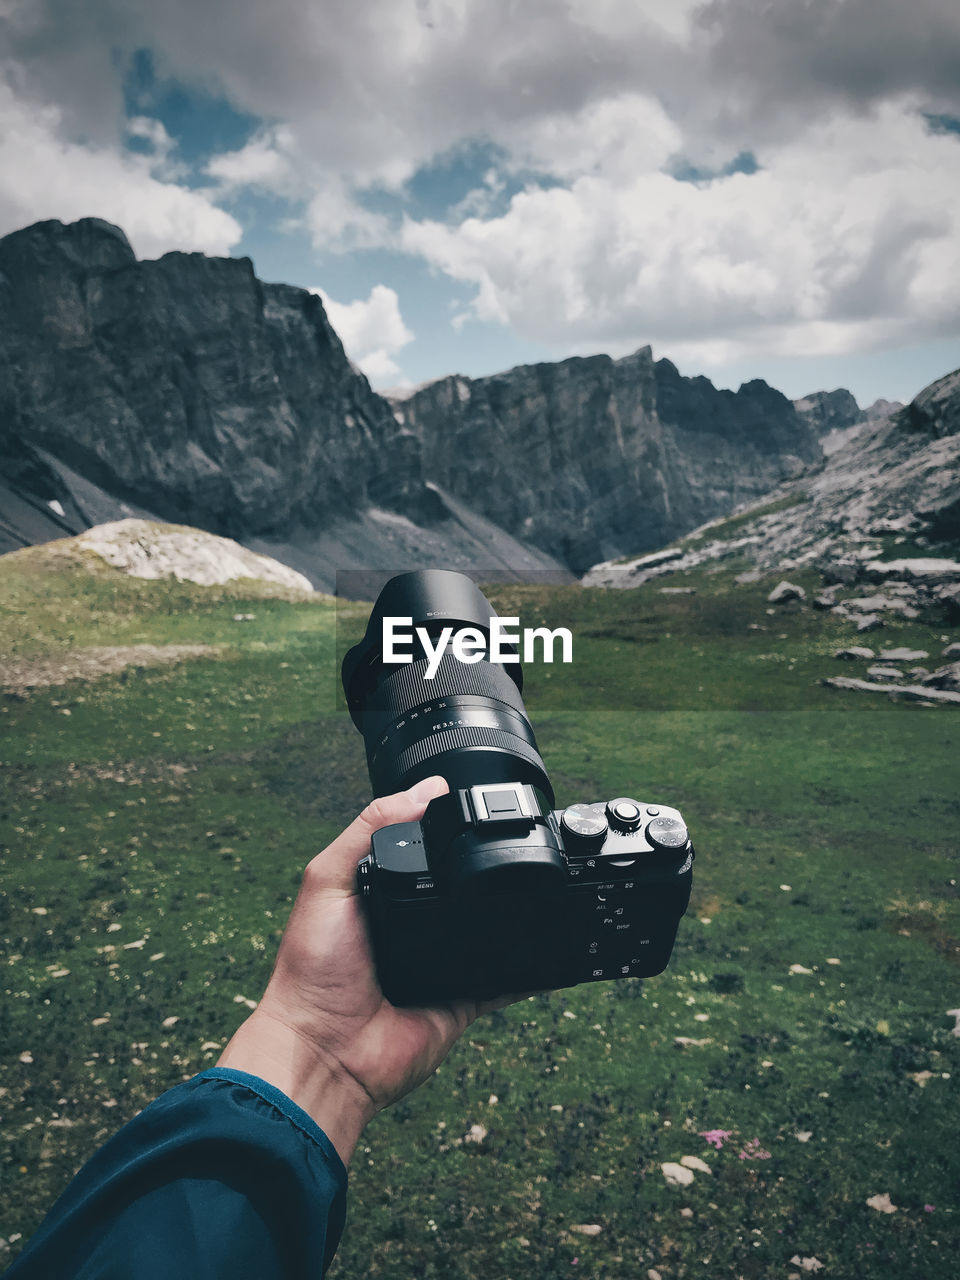 human hand, mountain, hand, photography themes, one person, scenics - nature, human body part, real people, personal perspective, holding, sky, nature, cloud - sky, non-urban scene, activity, landscape, mountain range, day, leisure activity, environment, body part, outdoors, digital camera, finger